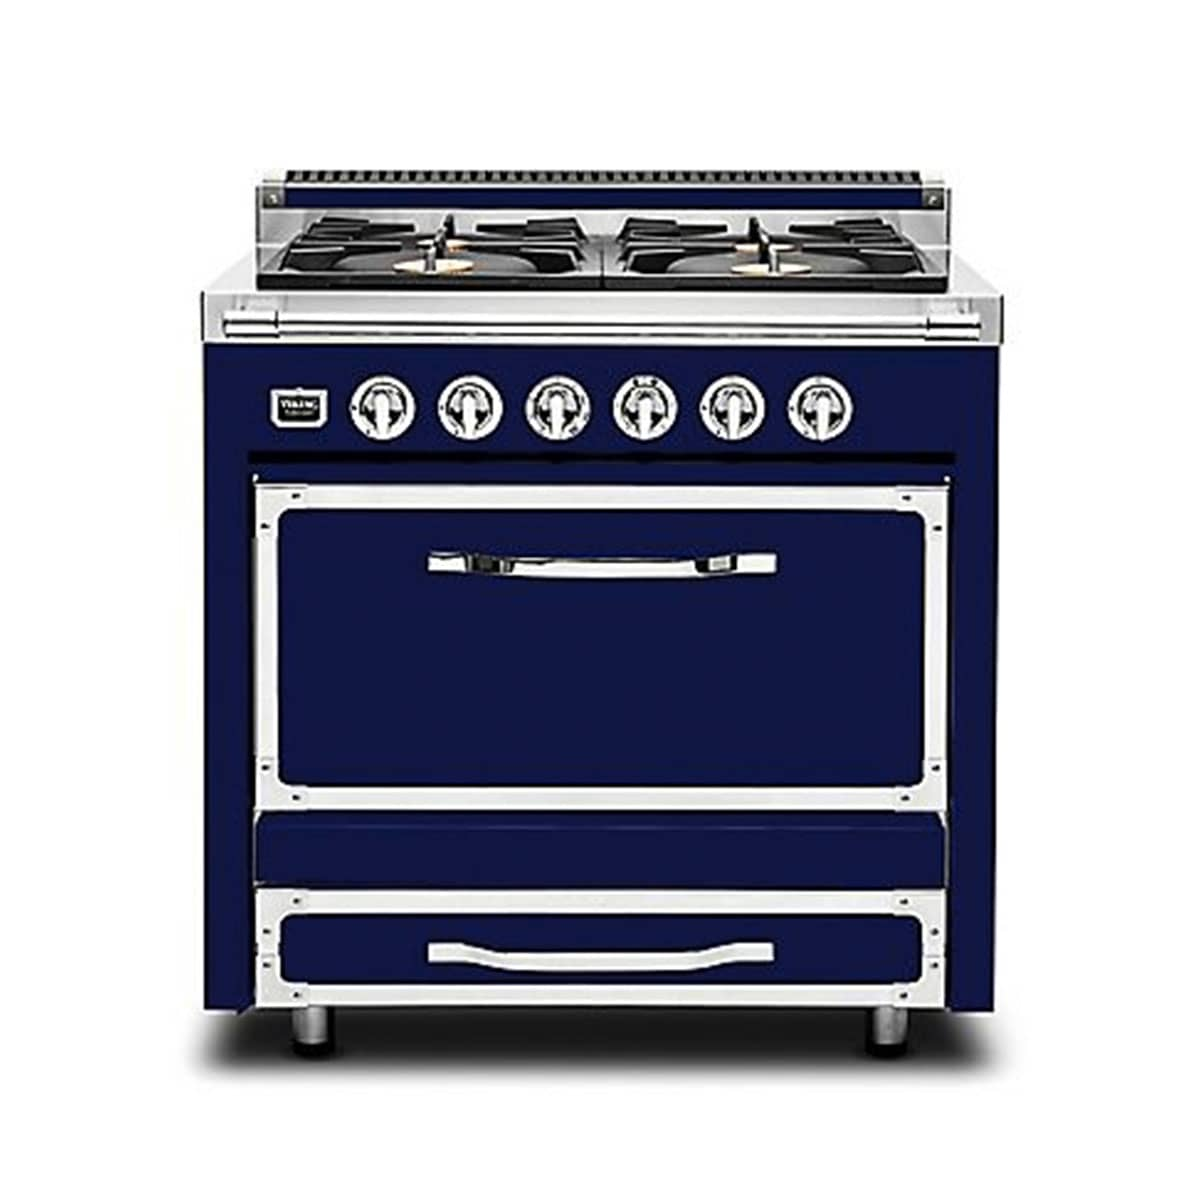 Beyond Smeg: 10 Colorful Appliances to Brighten Up Your Kitchen: gallery image 4